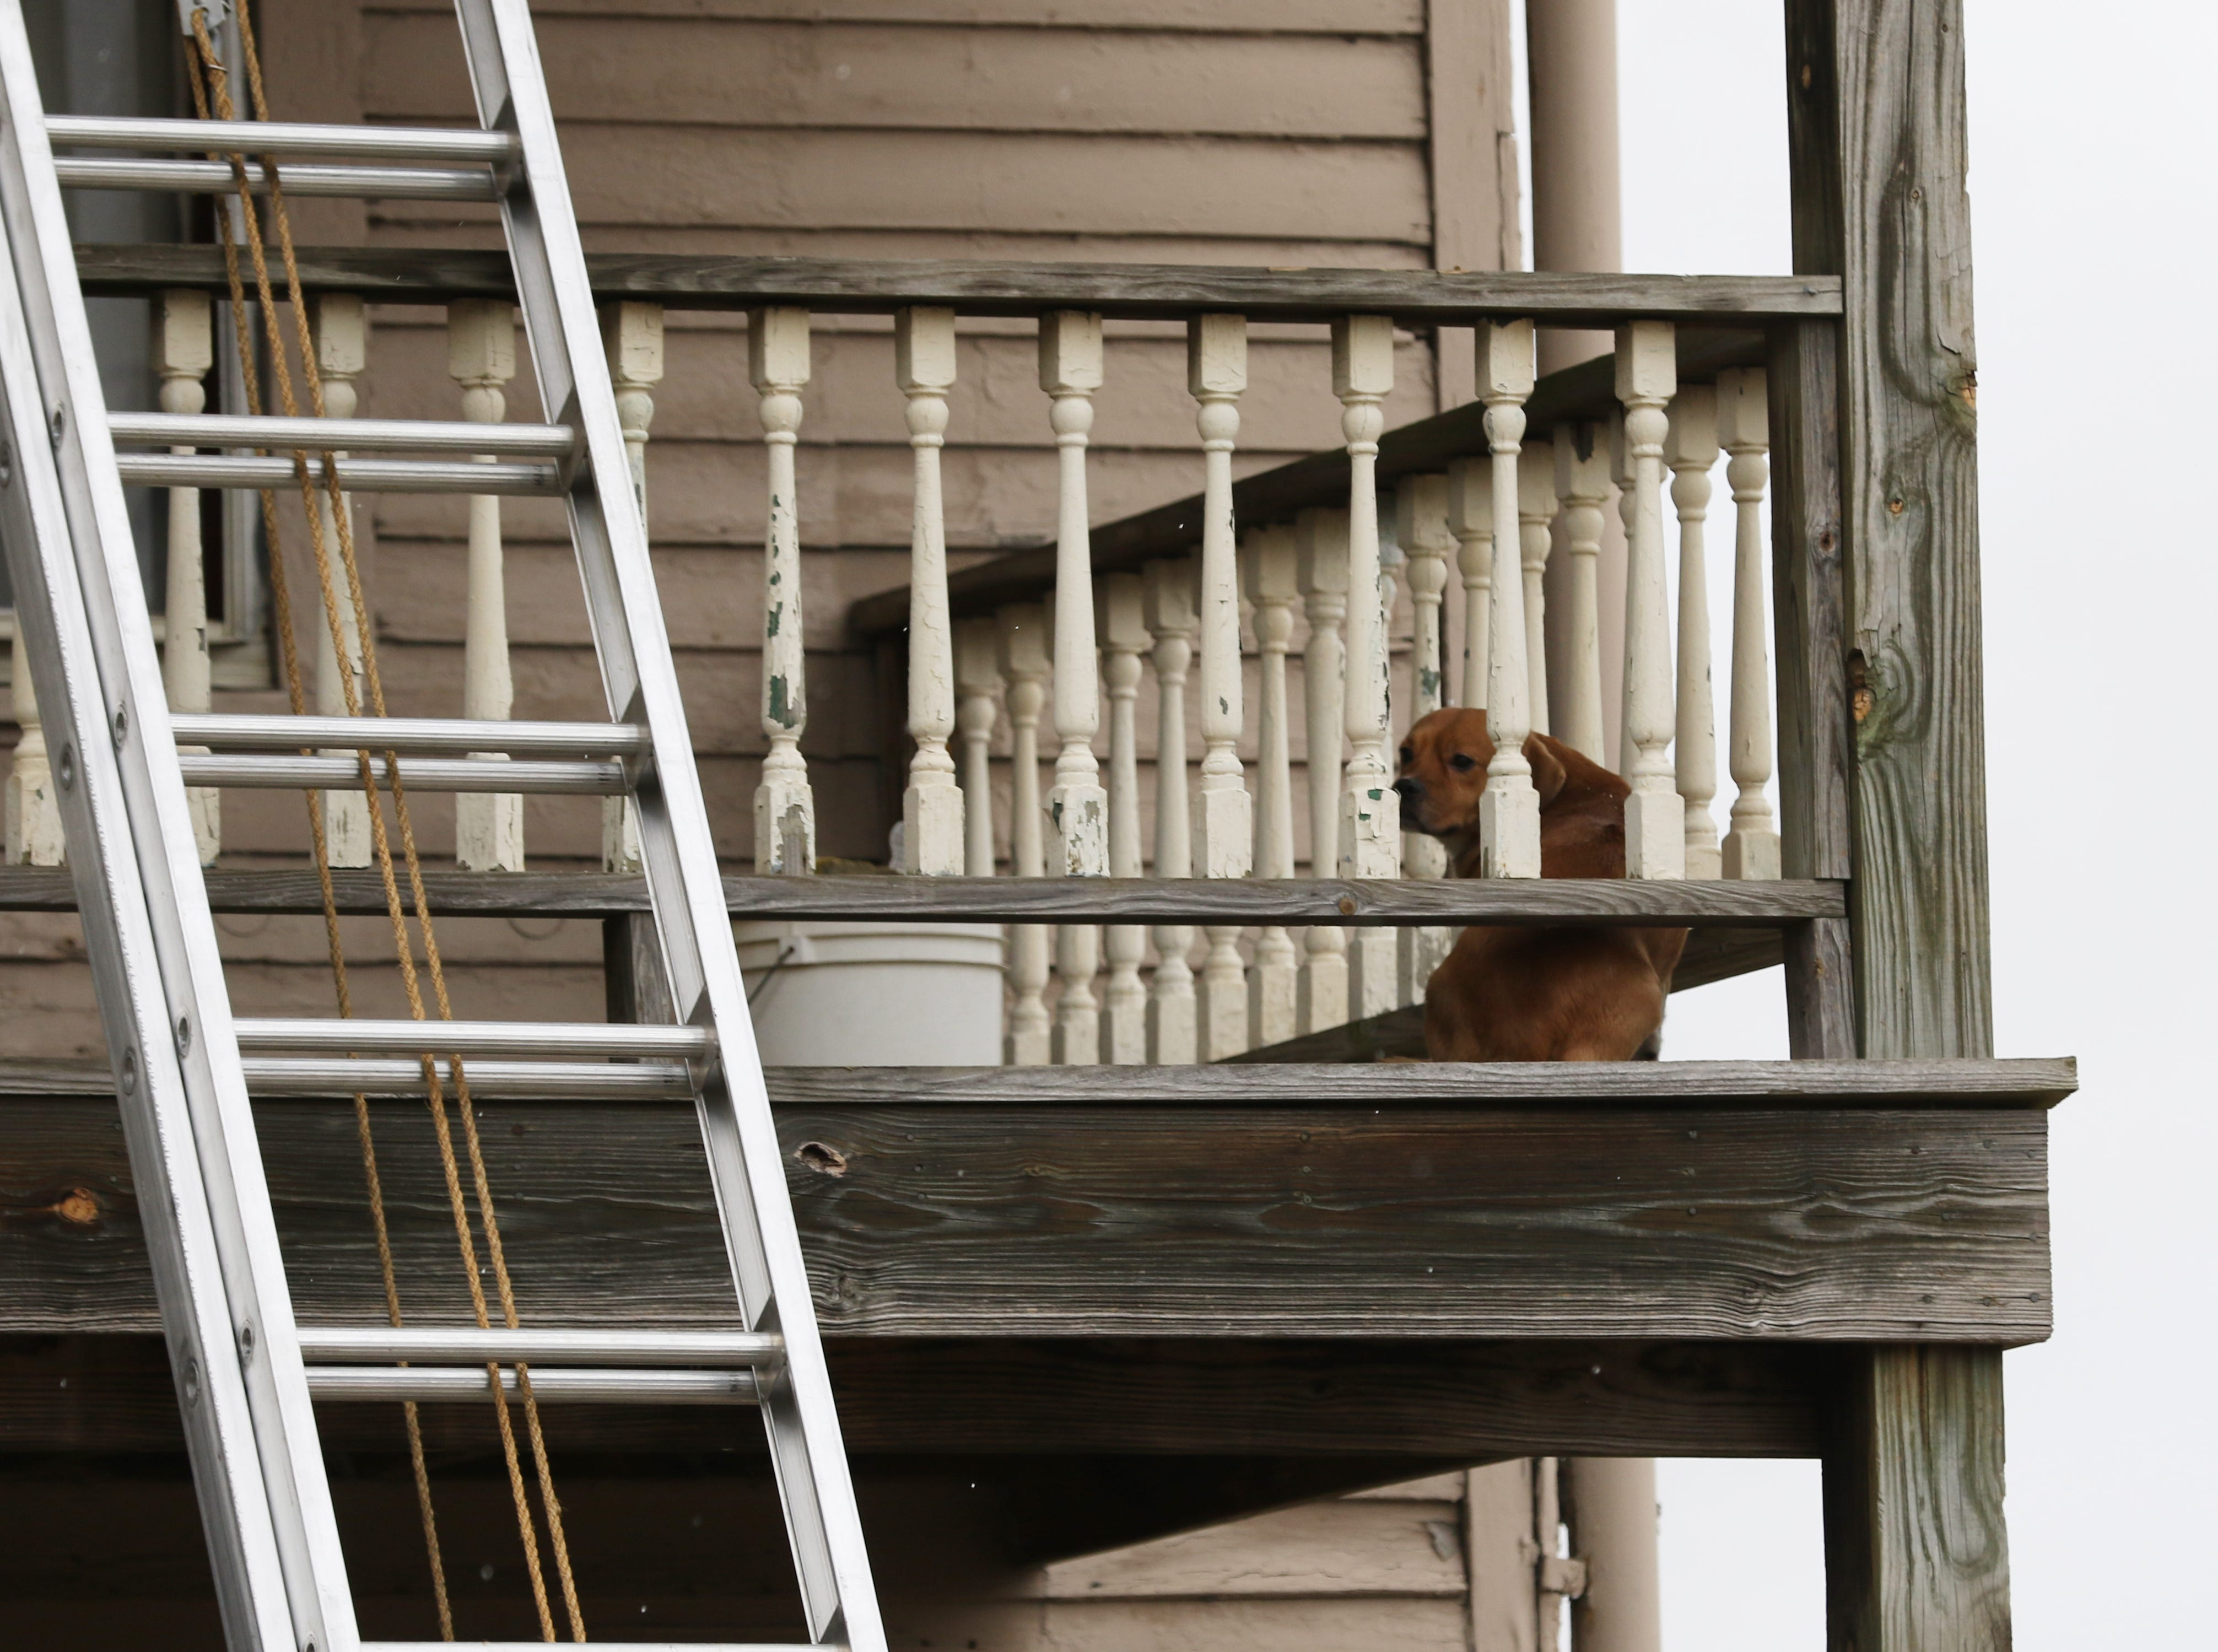 The Zanesville Fire Department fought a fire at 924 Maple Avenue in Zanesville Monday afternoon. Two people were taken to the hospital because of the blaze. A dog sits on a second story porch after the fire was contained.